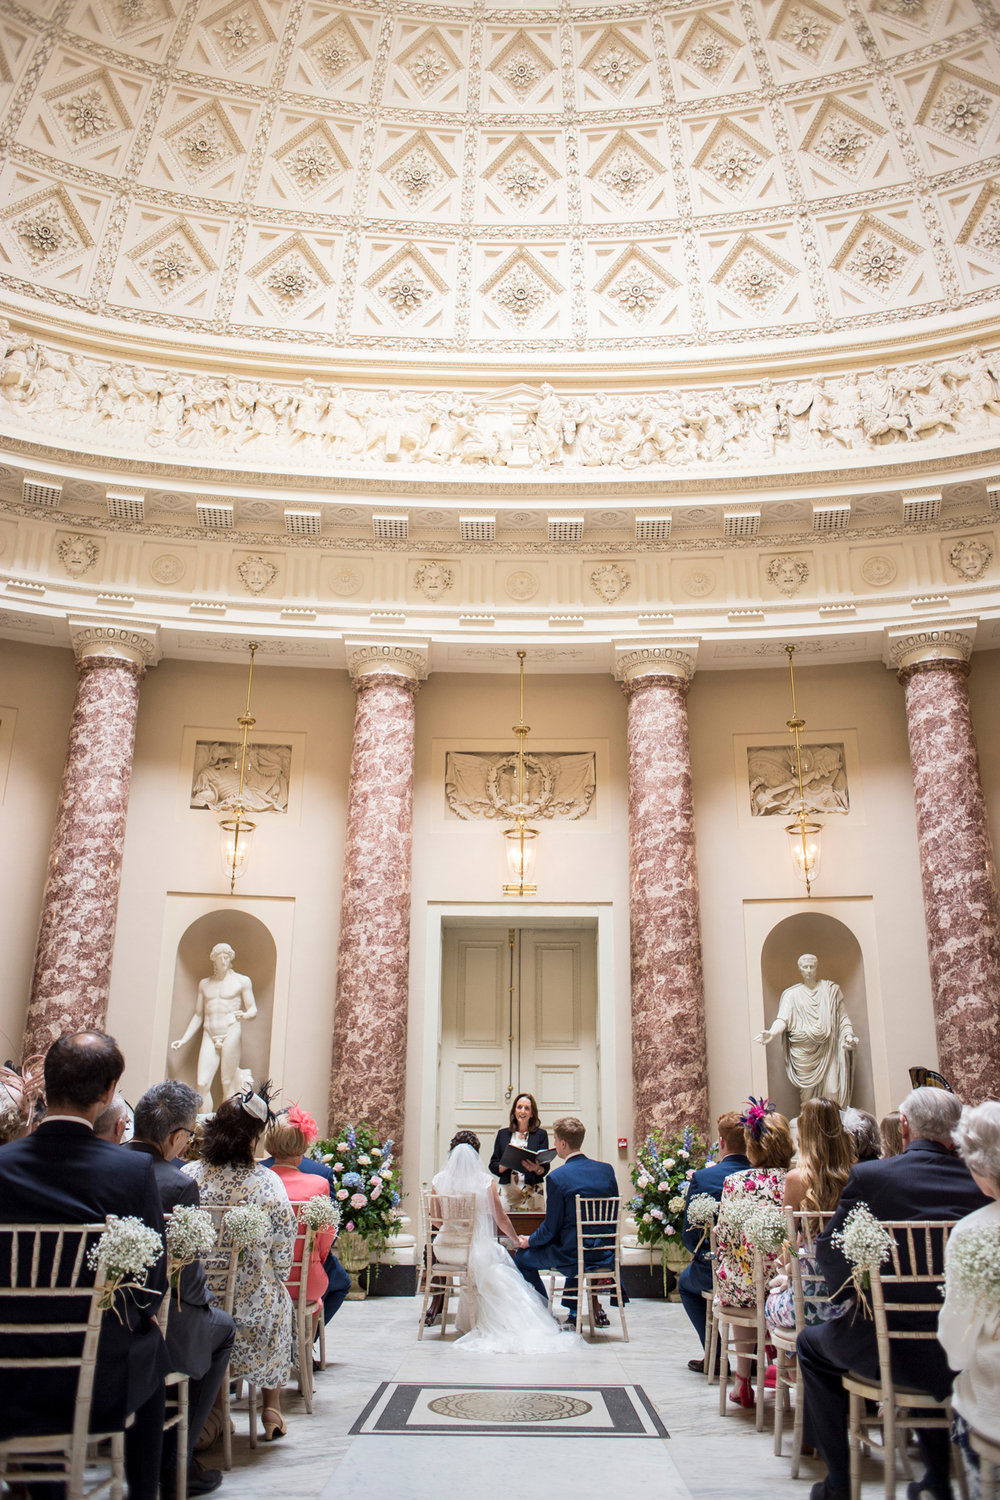 Ceremony room, bride, groom, marble,